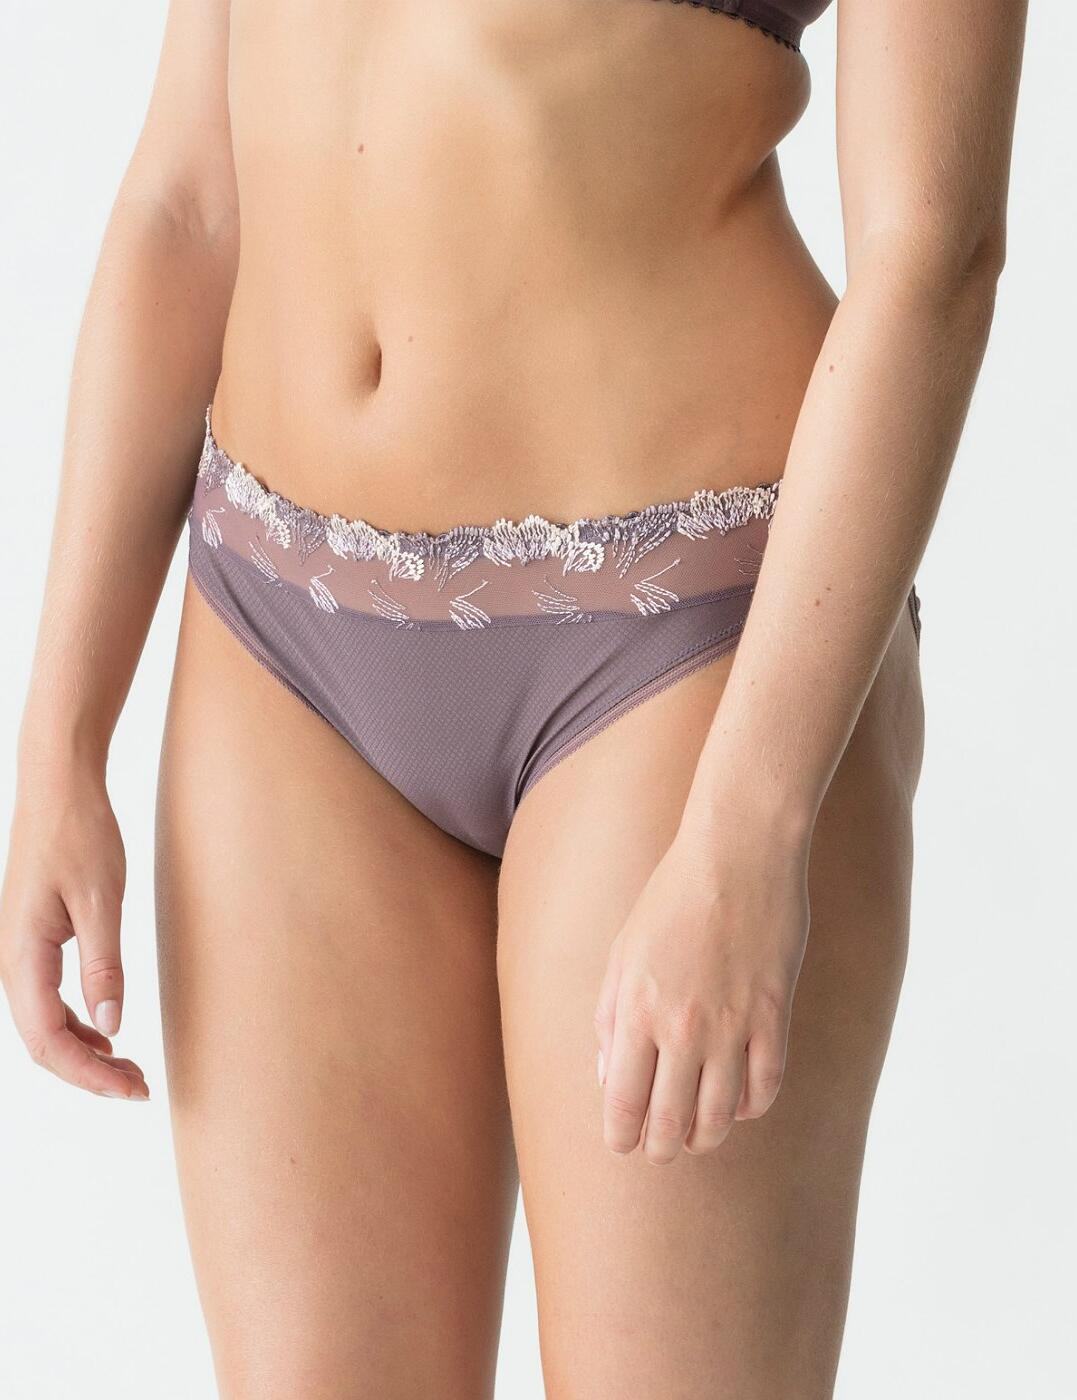 Prima Donna Promise Rio Briefs Knickers 0562990 New Womens Luxury Lingerie